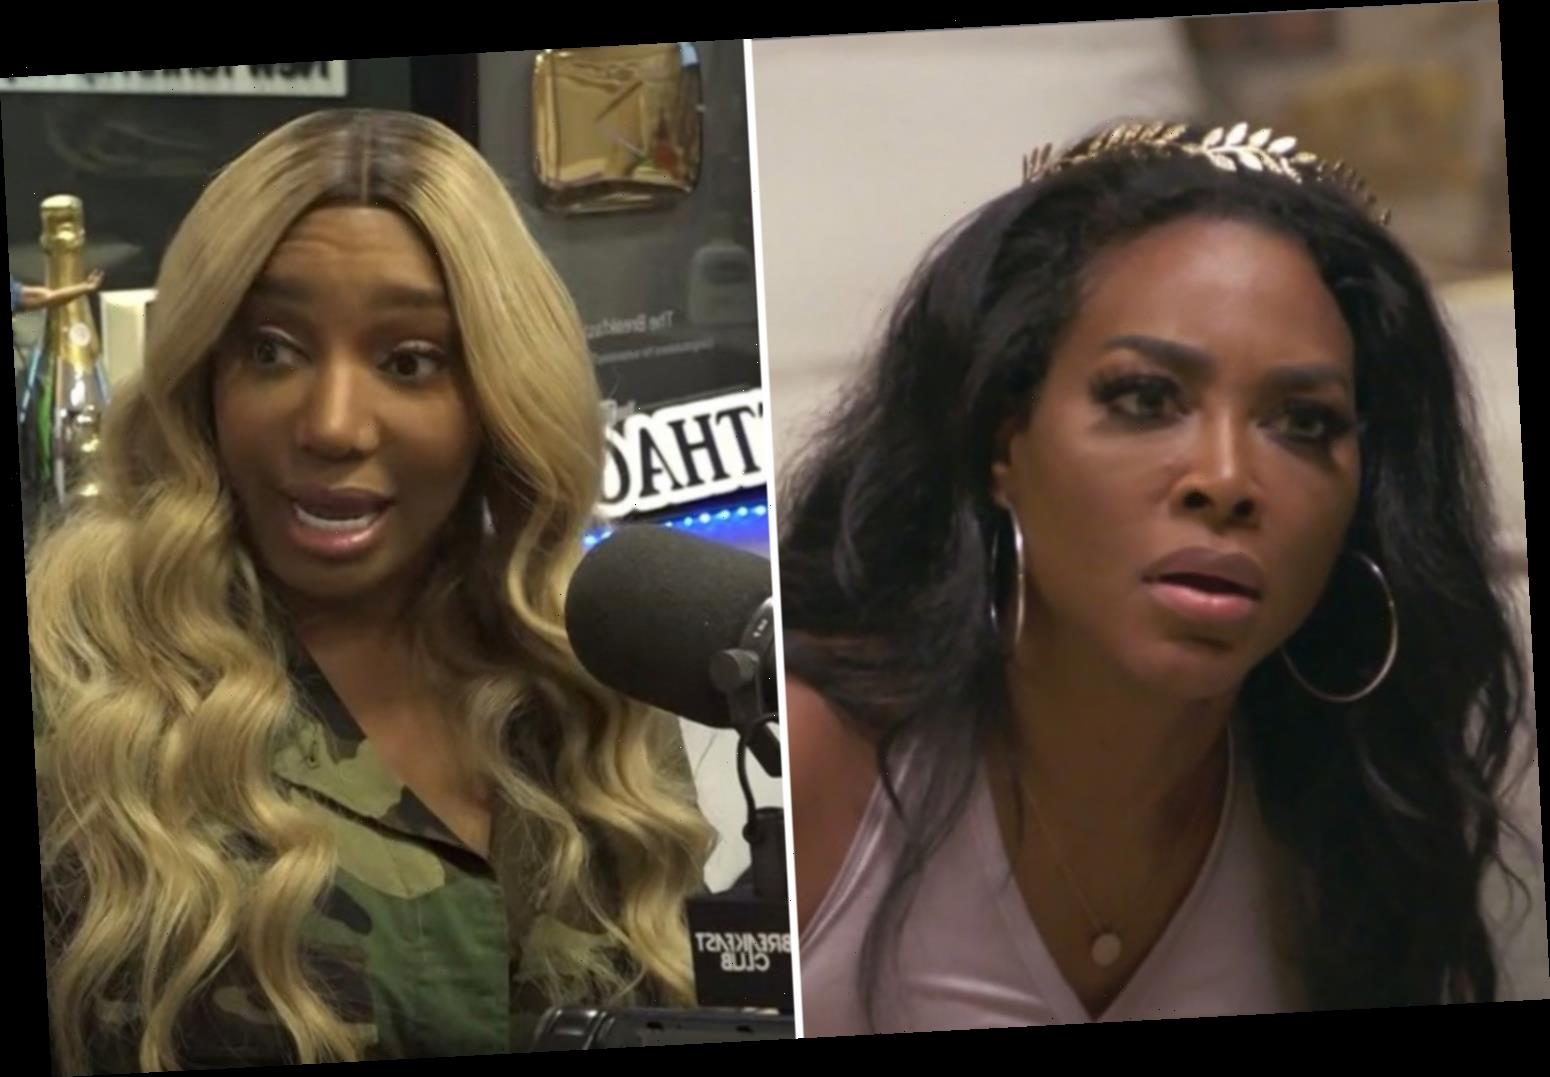 RHOA's Kenya Moore claims she'll 'expose fake friendships' and 'cut off the snake's heads' during postponed reunion – The Sun